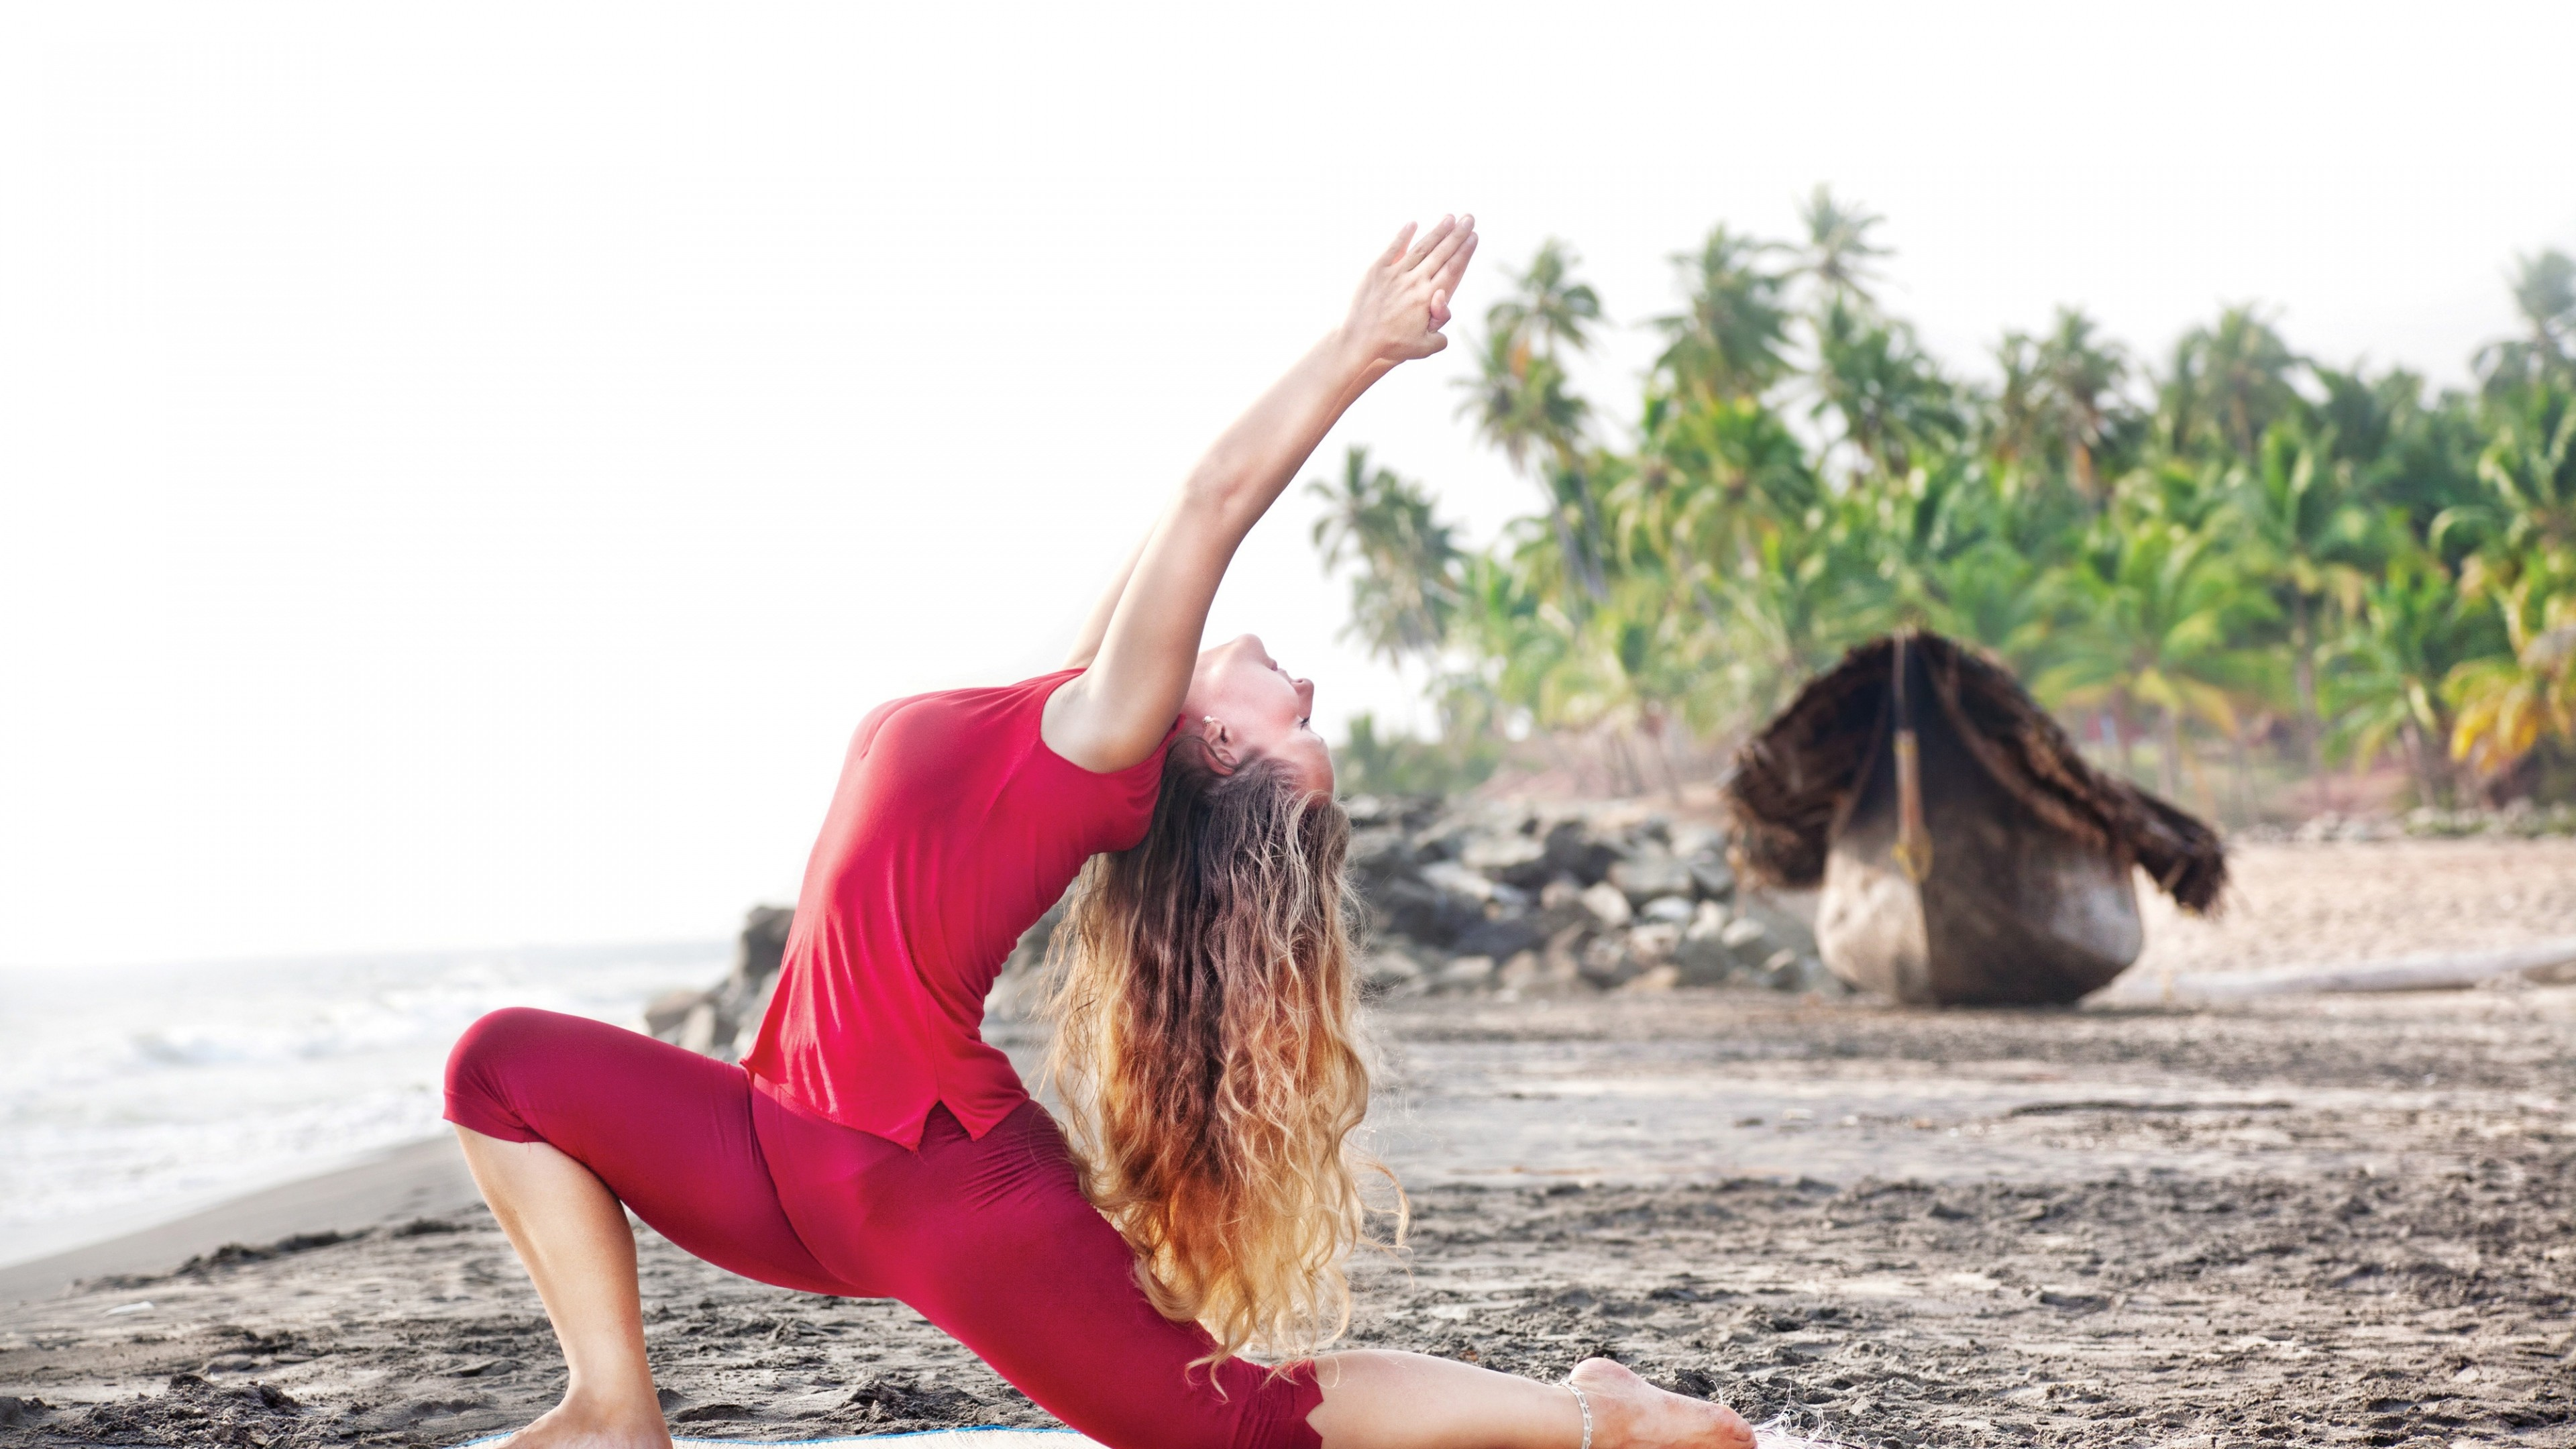 3840x2160  Wallpaper girl, yoga, beach, sea, palm trees